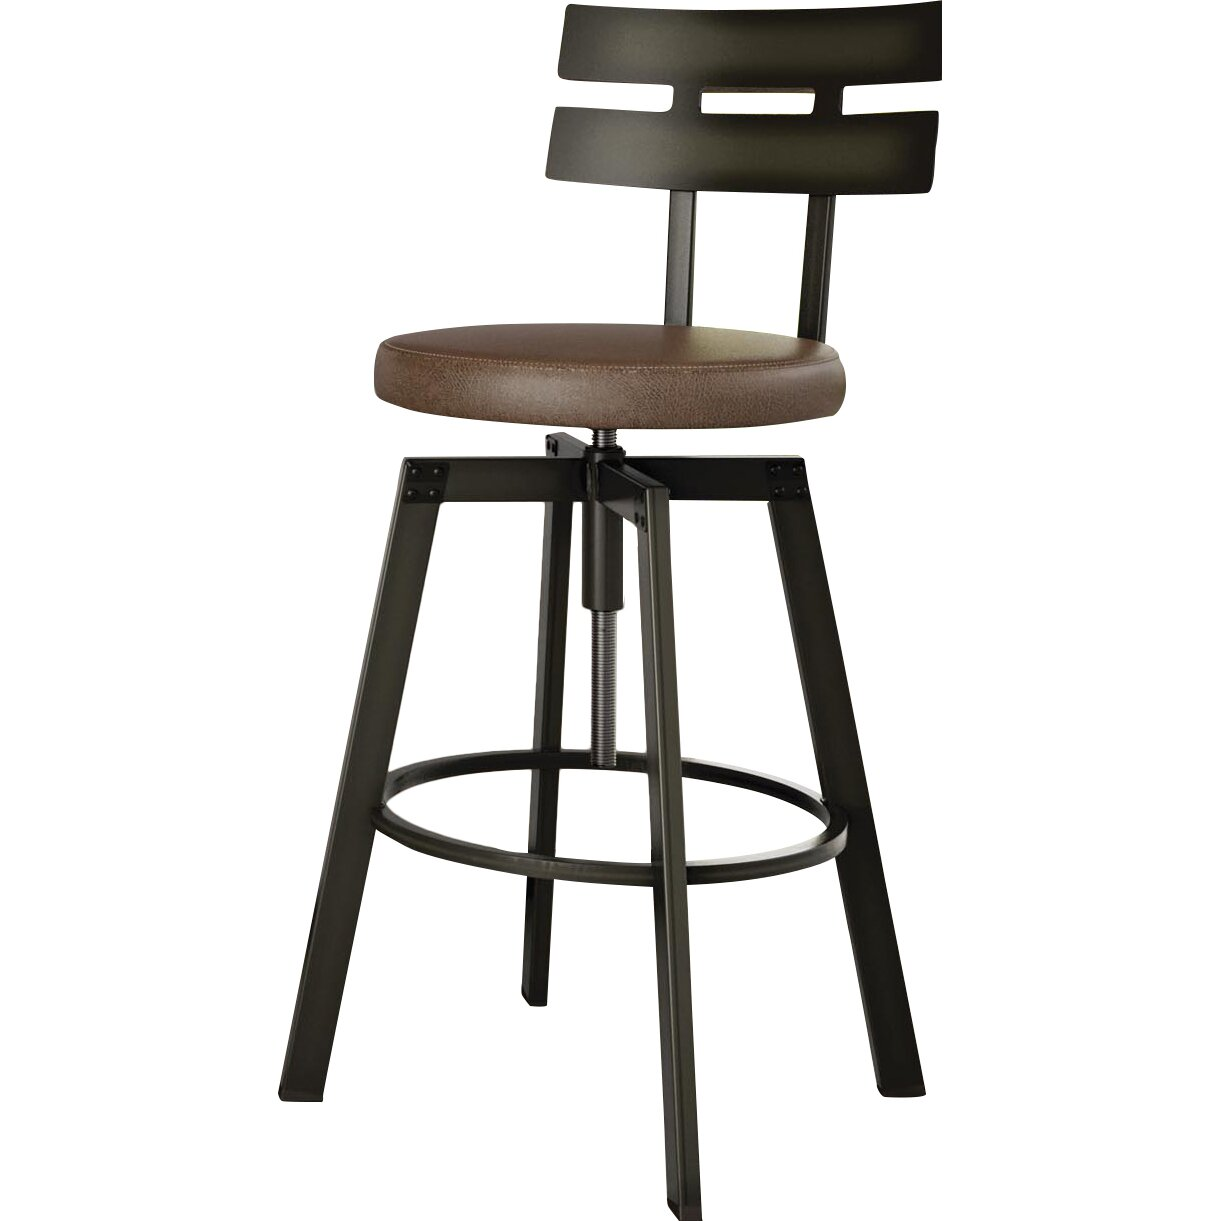 Trent Austin Design Berrycone Adjustable Height Bar Stool  : Berrycone 3125 Bar Stool with Cushion TADN3364 from www.wayfair.com size 1221 x 1221 jpeg 93kB